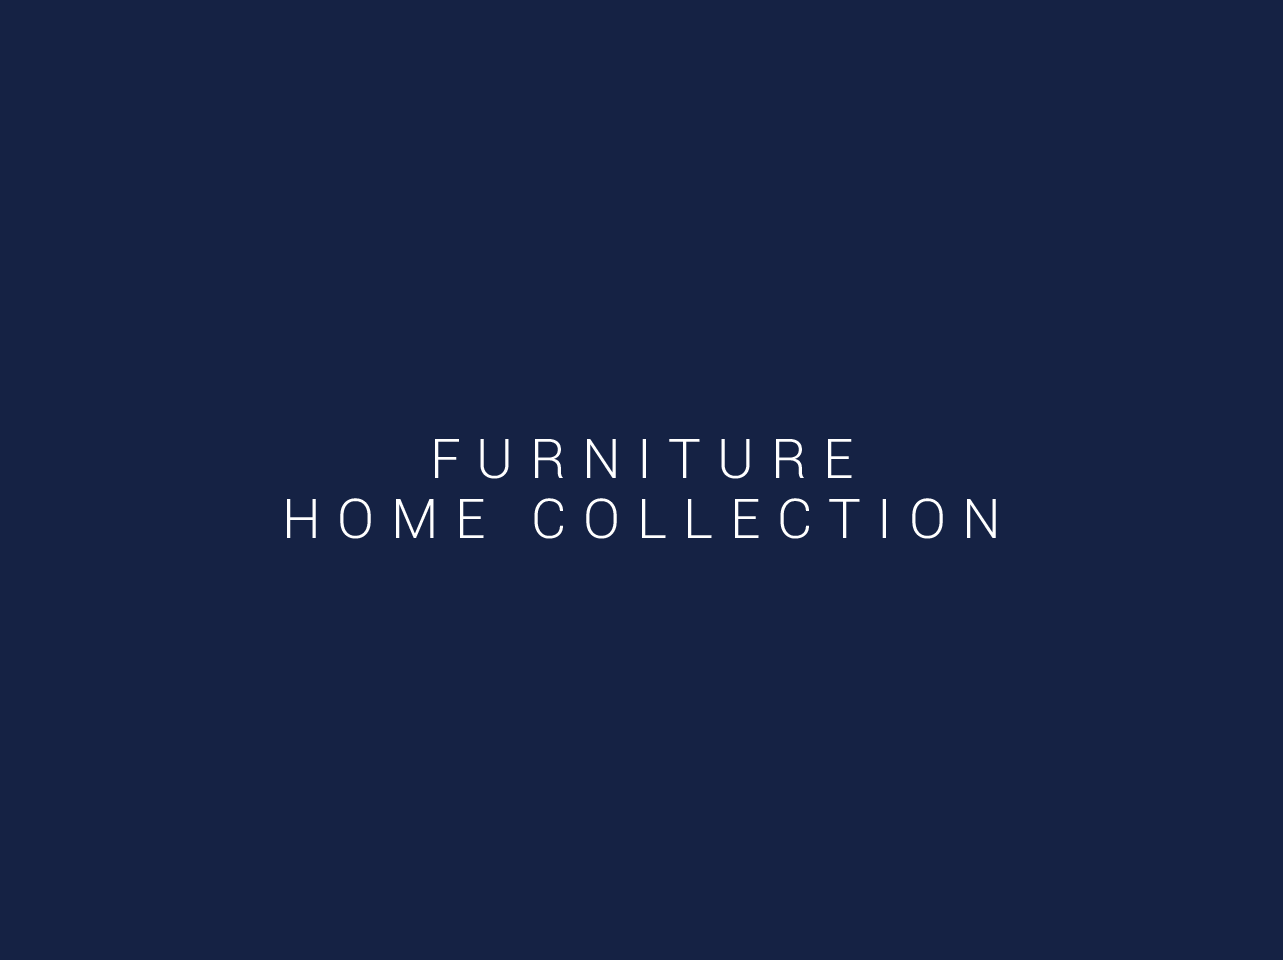 FURNITURE HOME COLLECTION